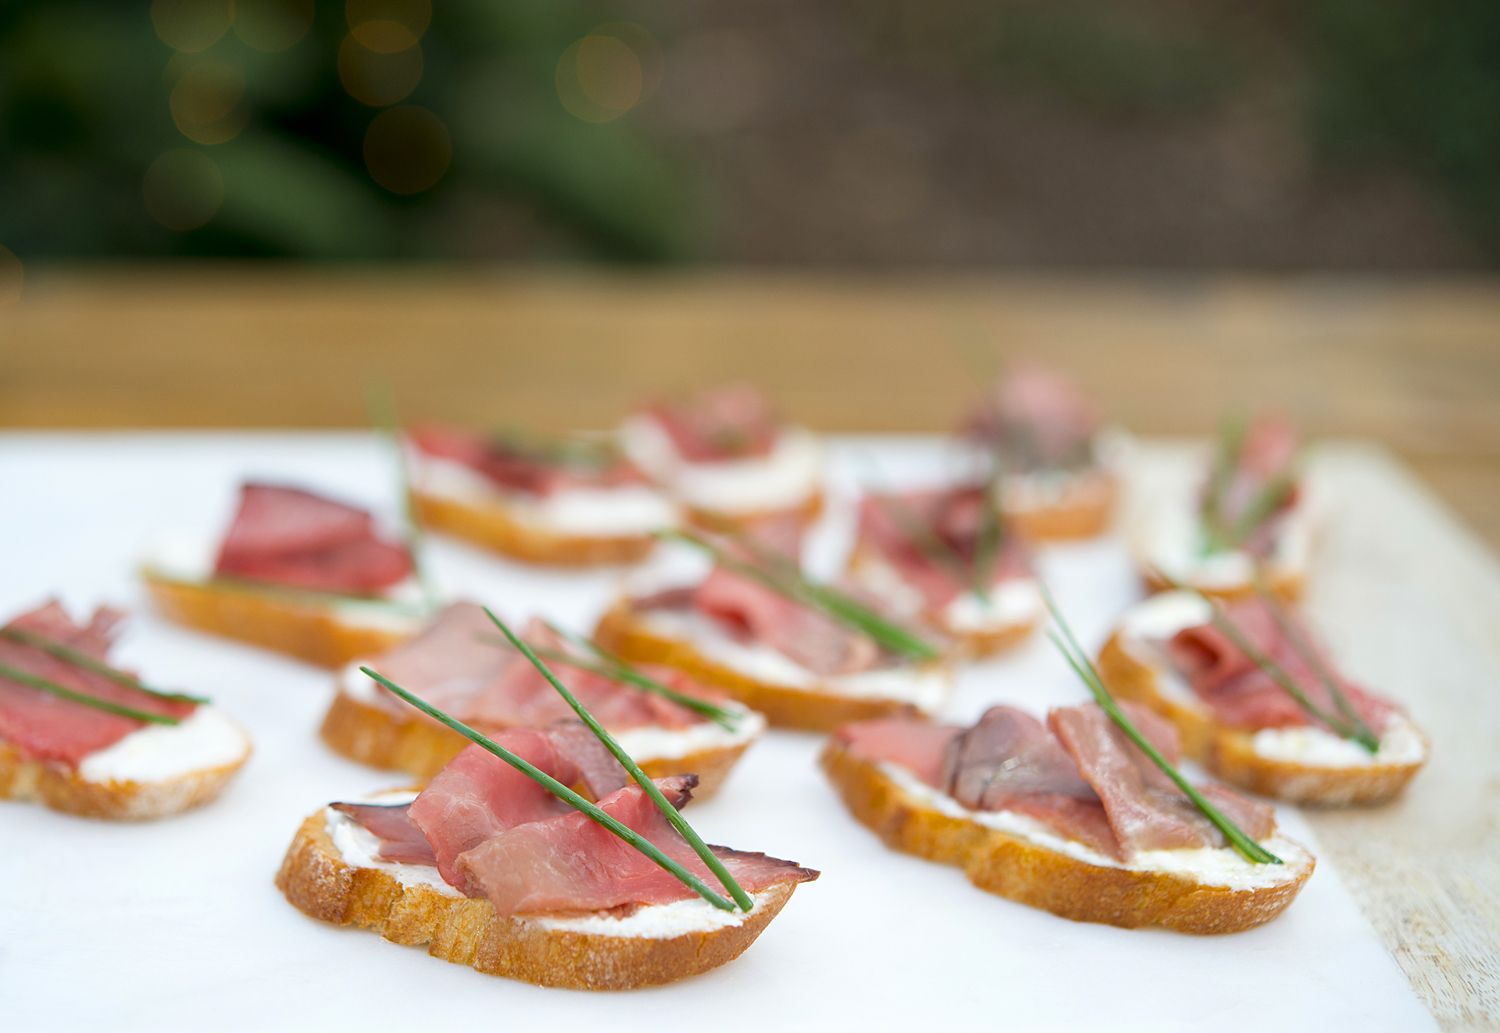 Beef Tenderloin & Horseradish Crostini Recipe - Crate & Barrel Christmas hors d'oeuvre with My Splendid Living